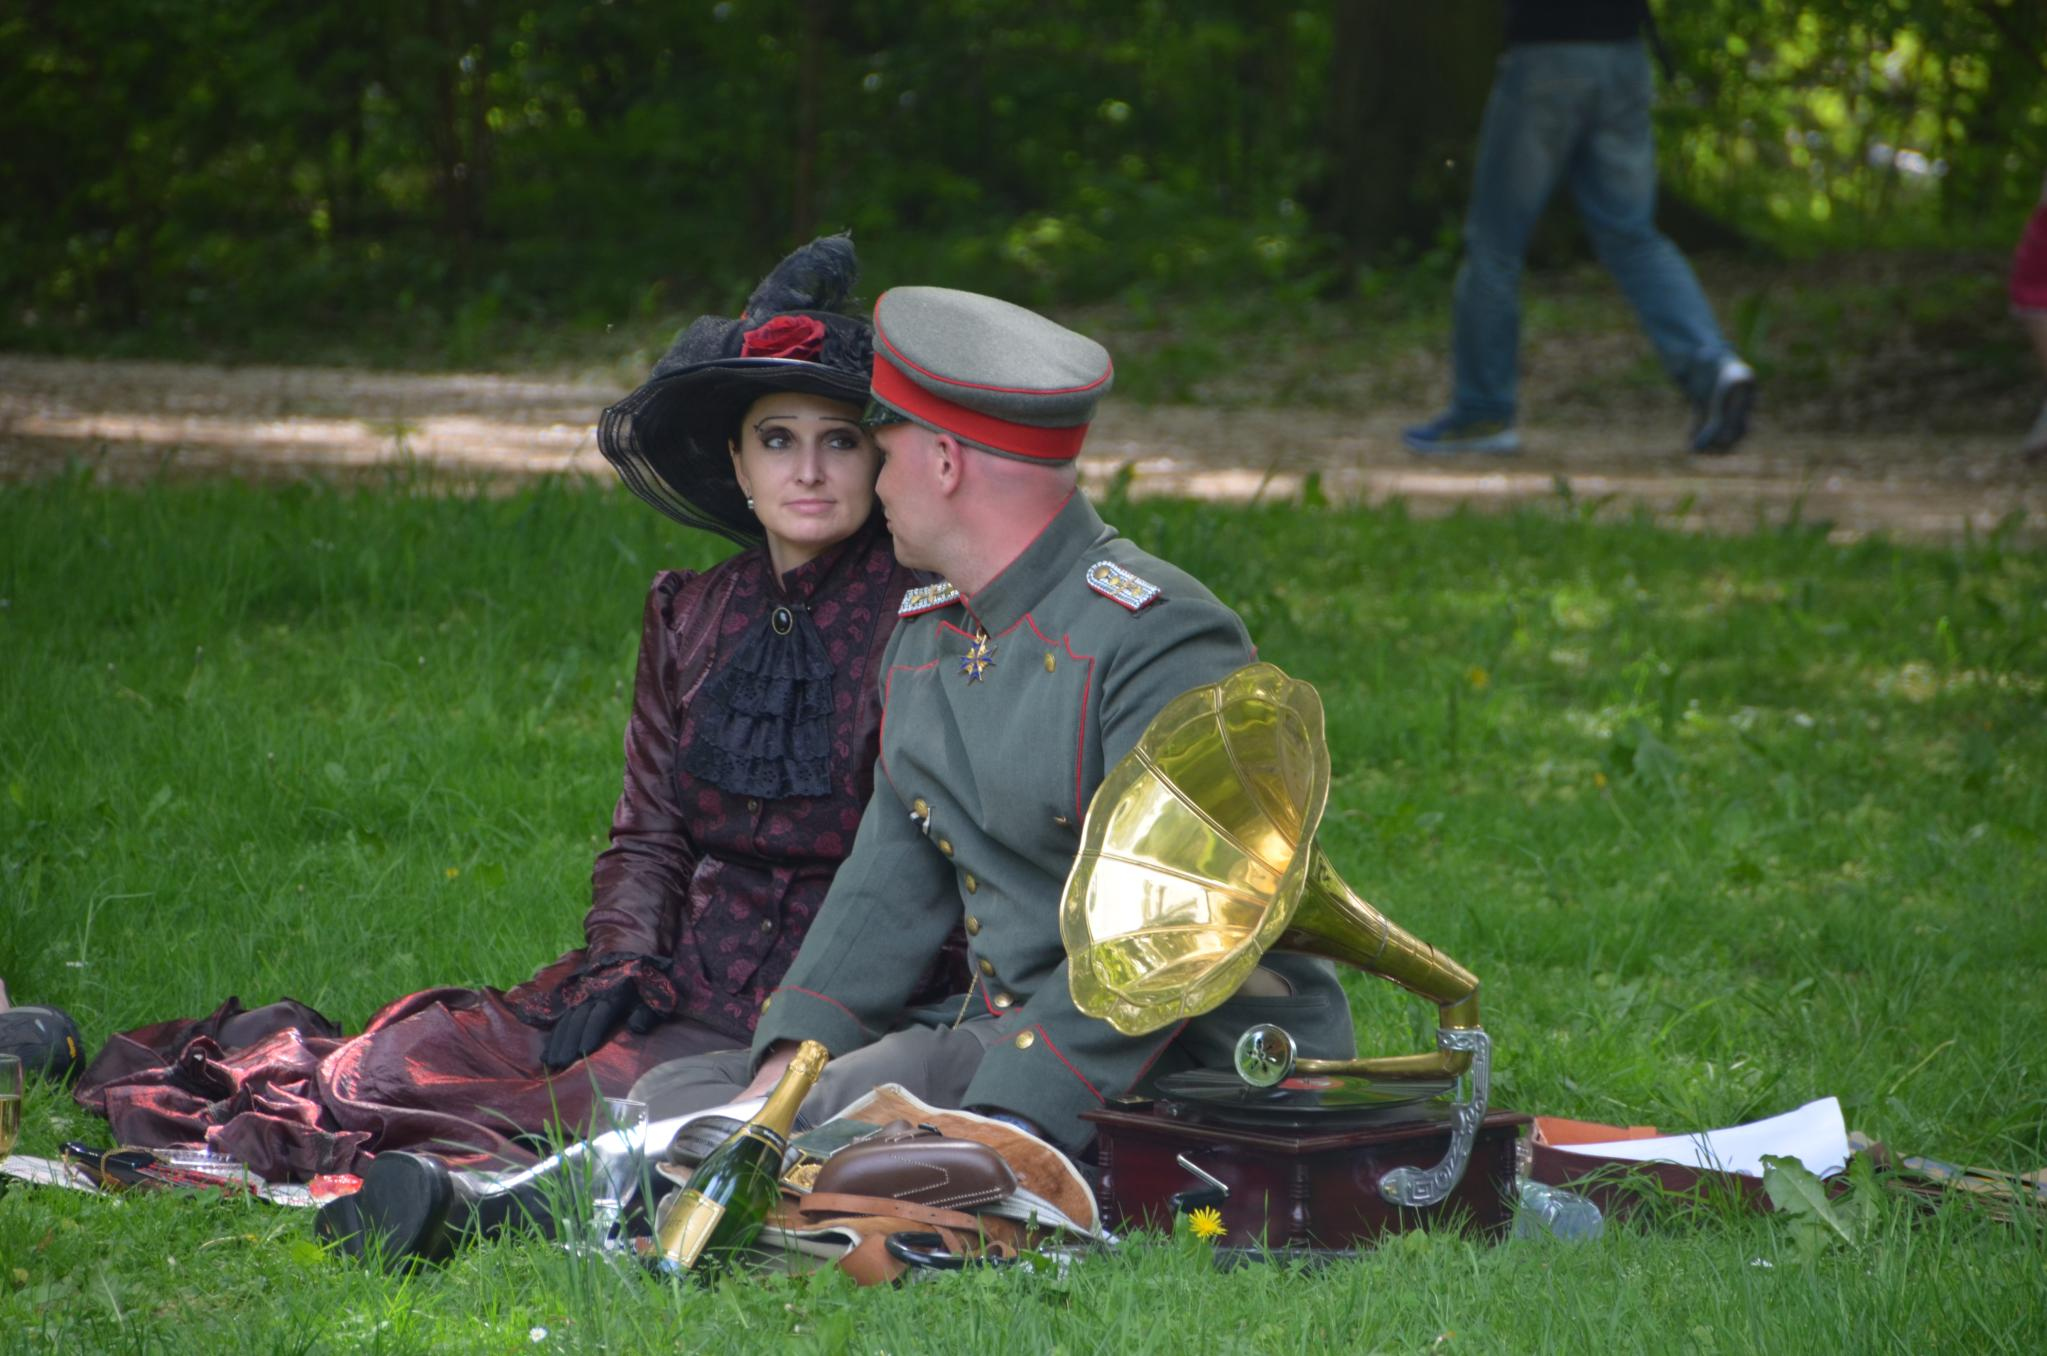 German uniforms of WWI - Page 5 - Axis History Forum